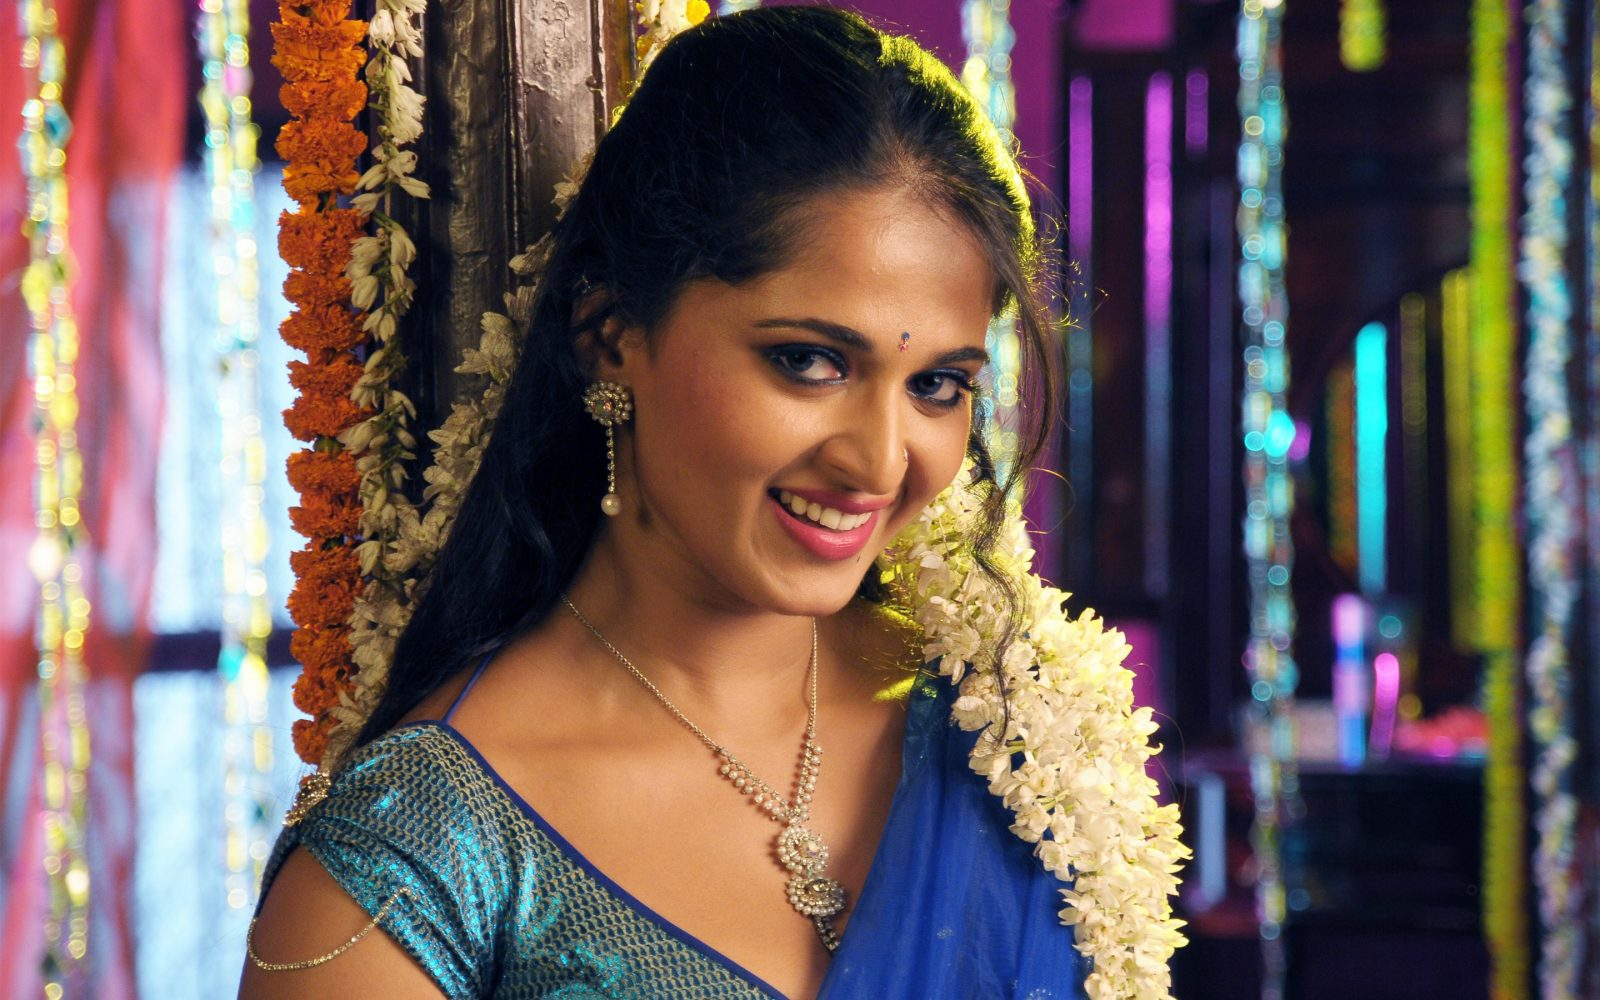 Anushka Shetty Hot in saree